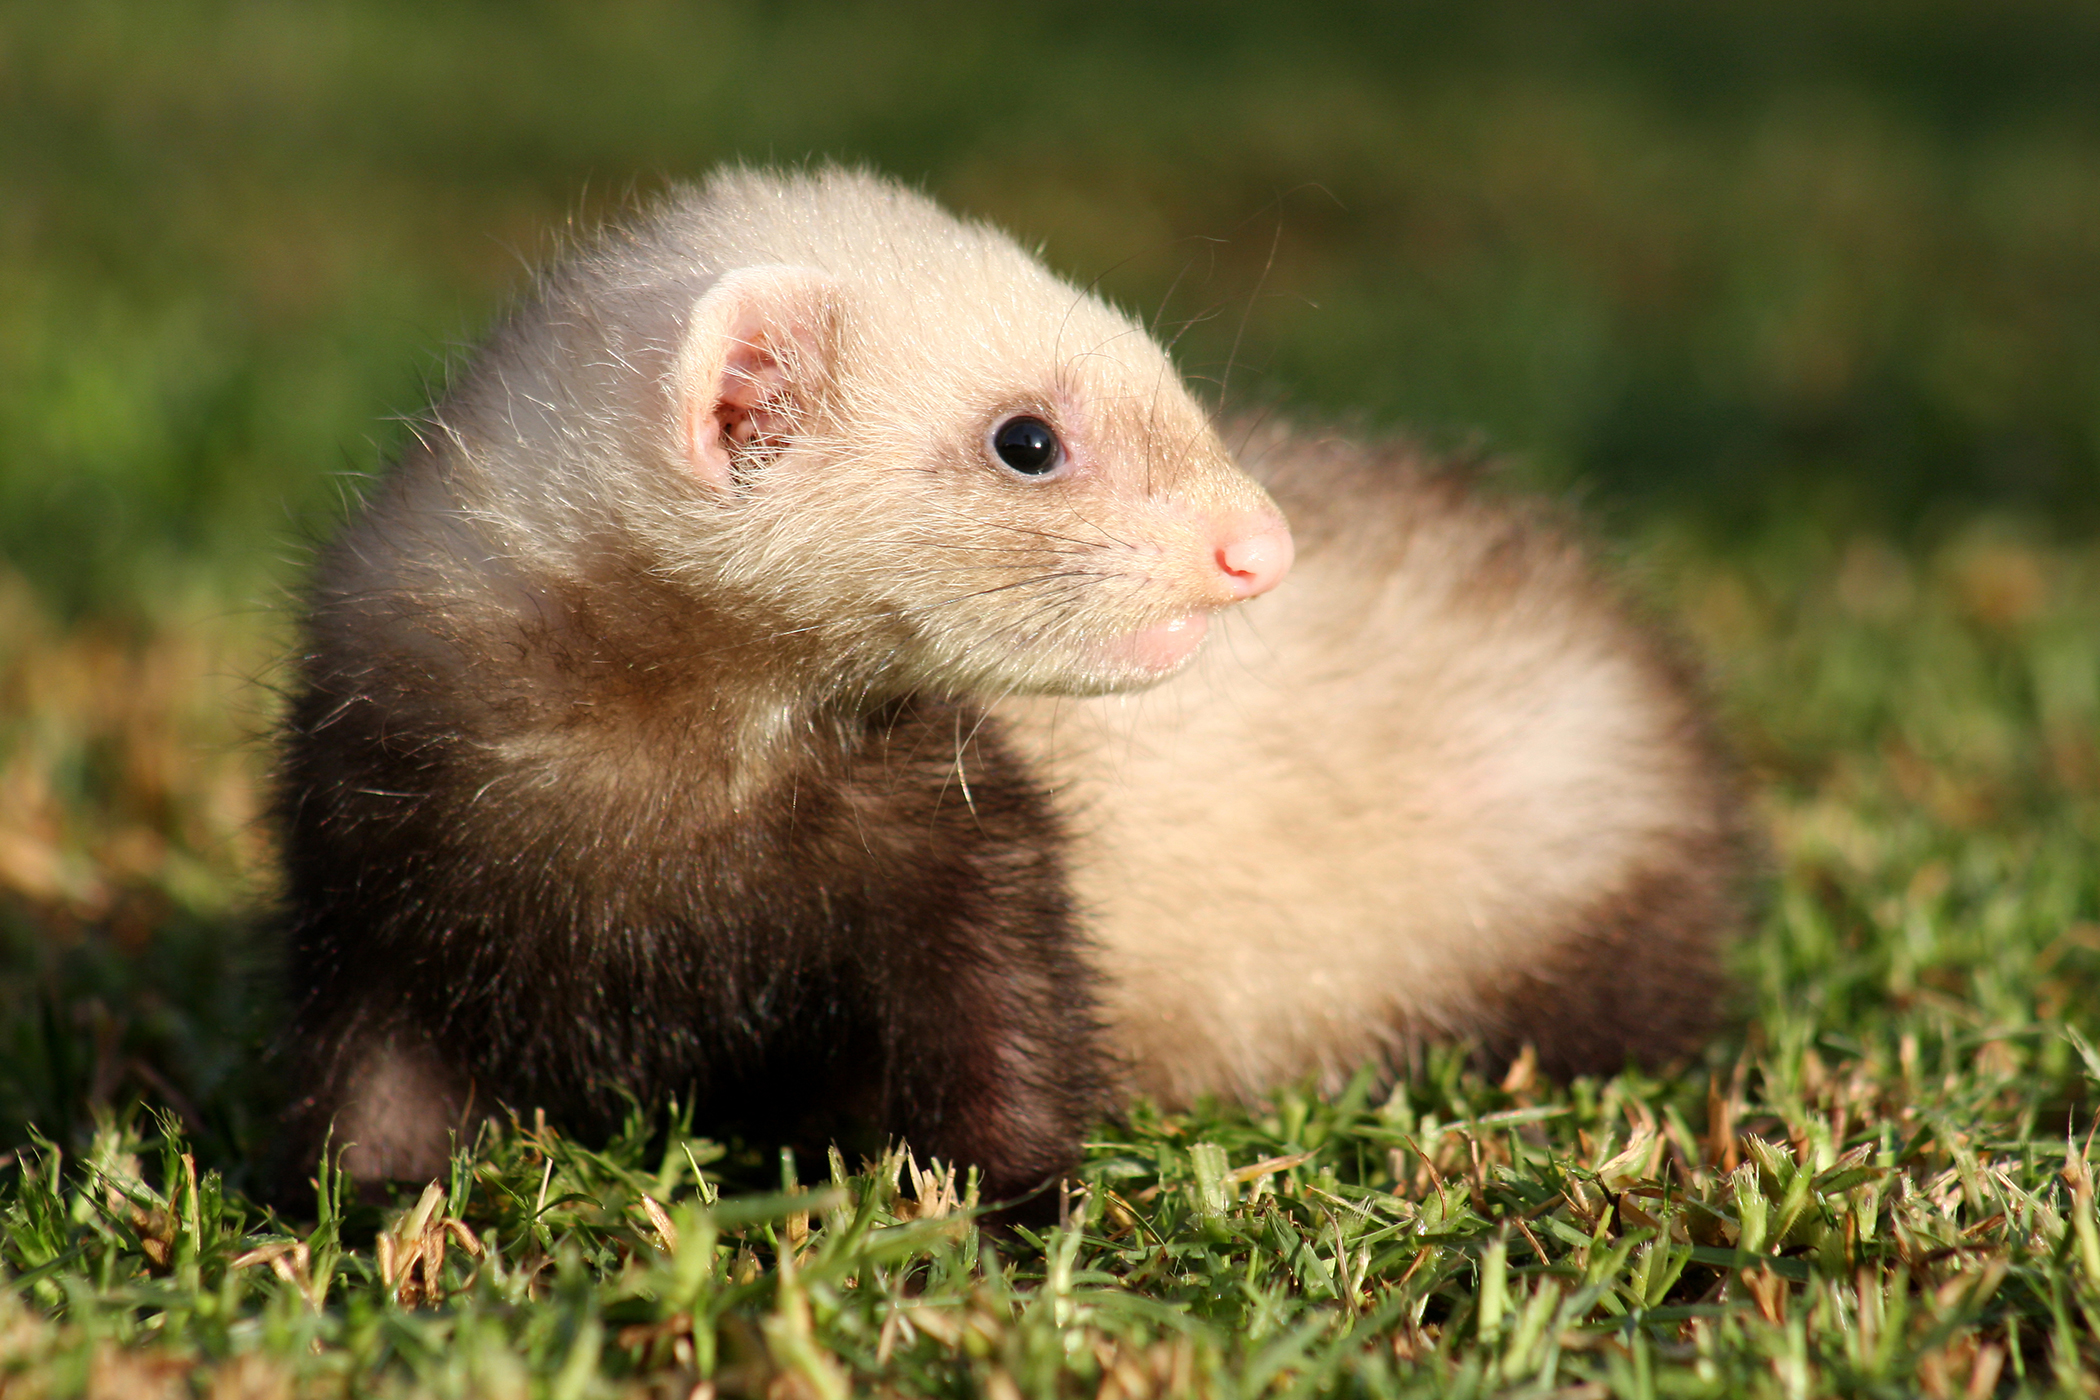 Intestinal Coccidia Parasites in Ferrets - Symptoms, Causes, Diagnosis, Treatment, Recovery, Management, Cost